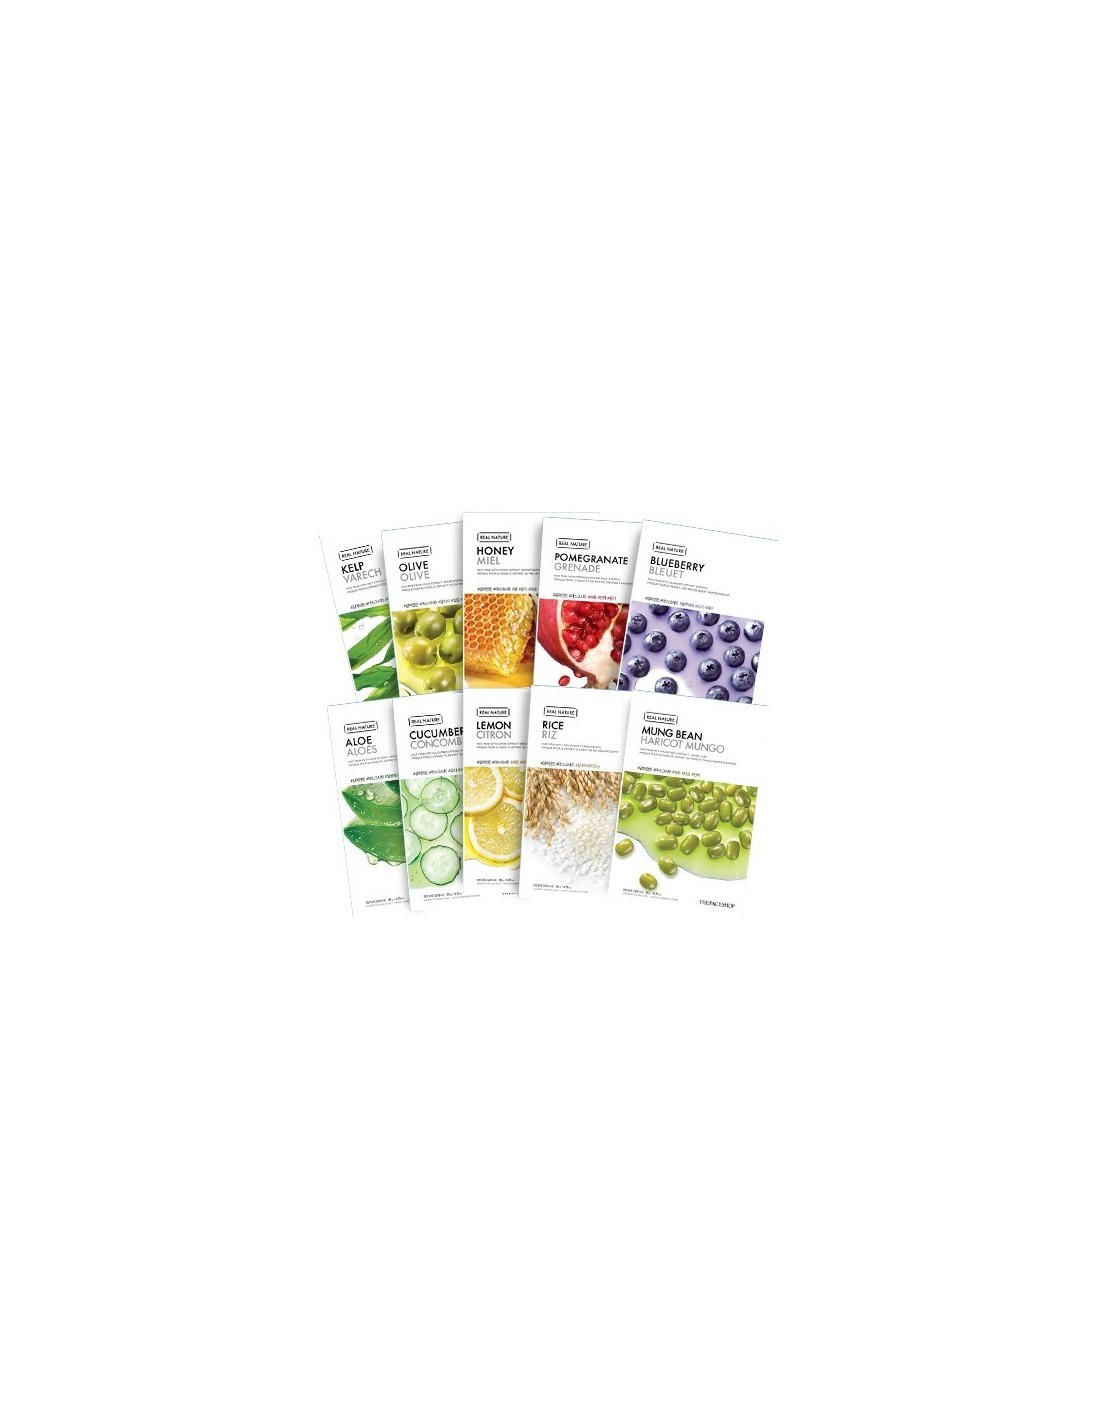 Thefaceshop Real Nature Mask Sheet 20kinds The Face Shop Kelp Coca Cola Oil Clear Pact 9g